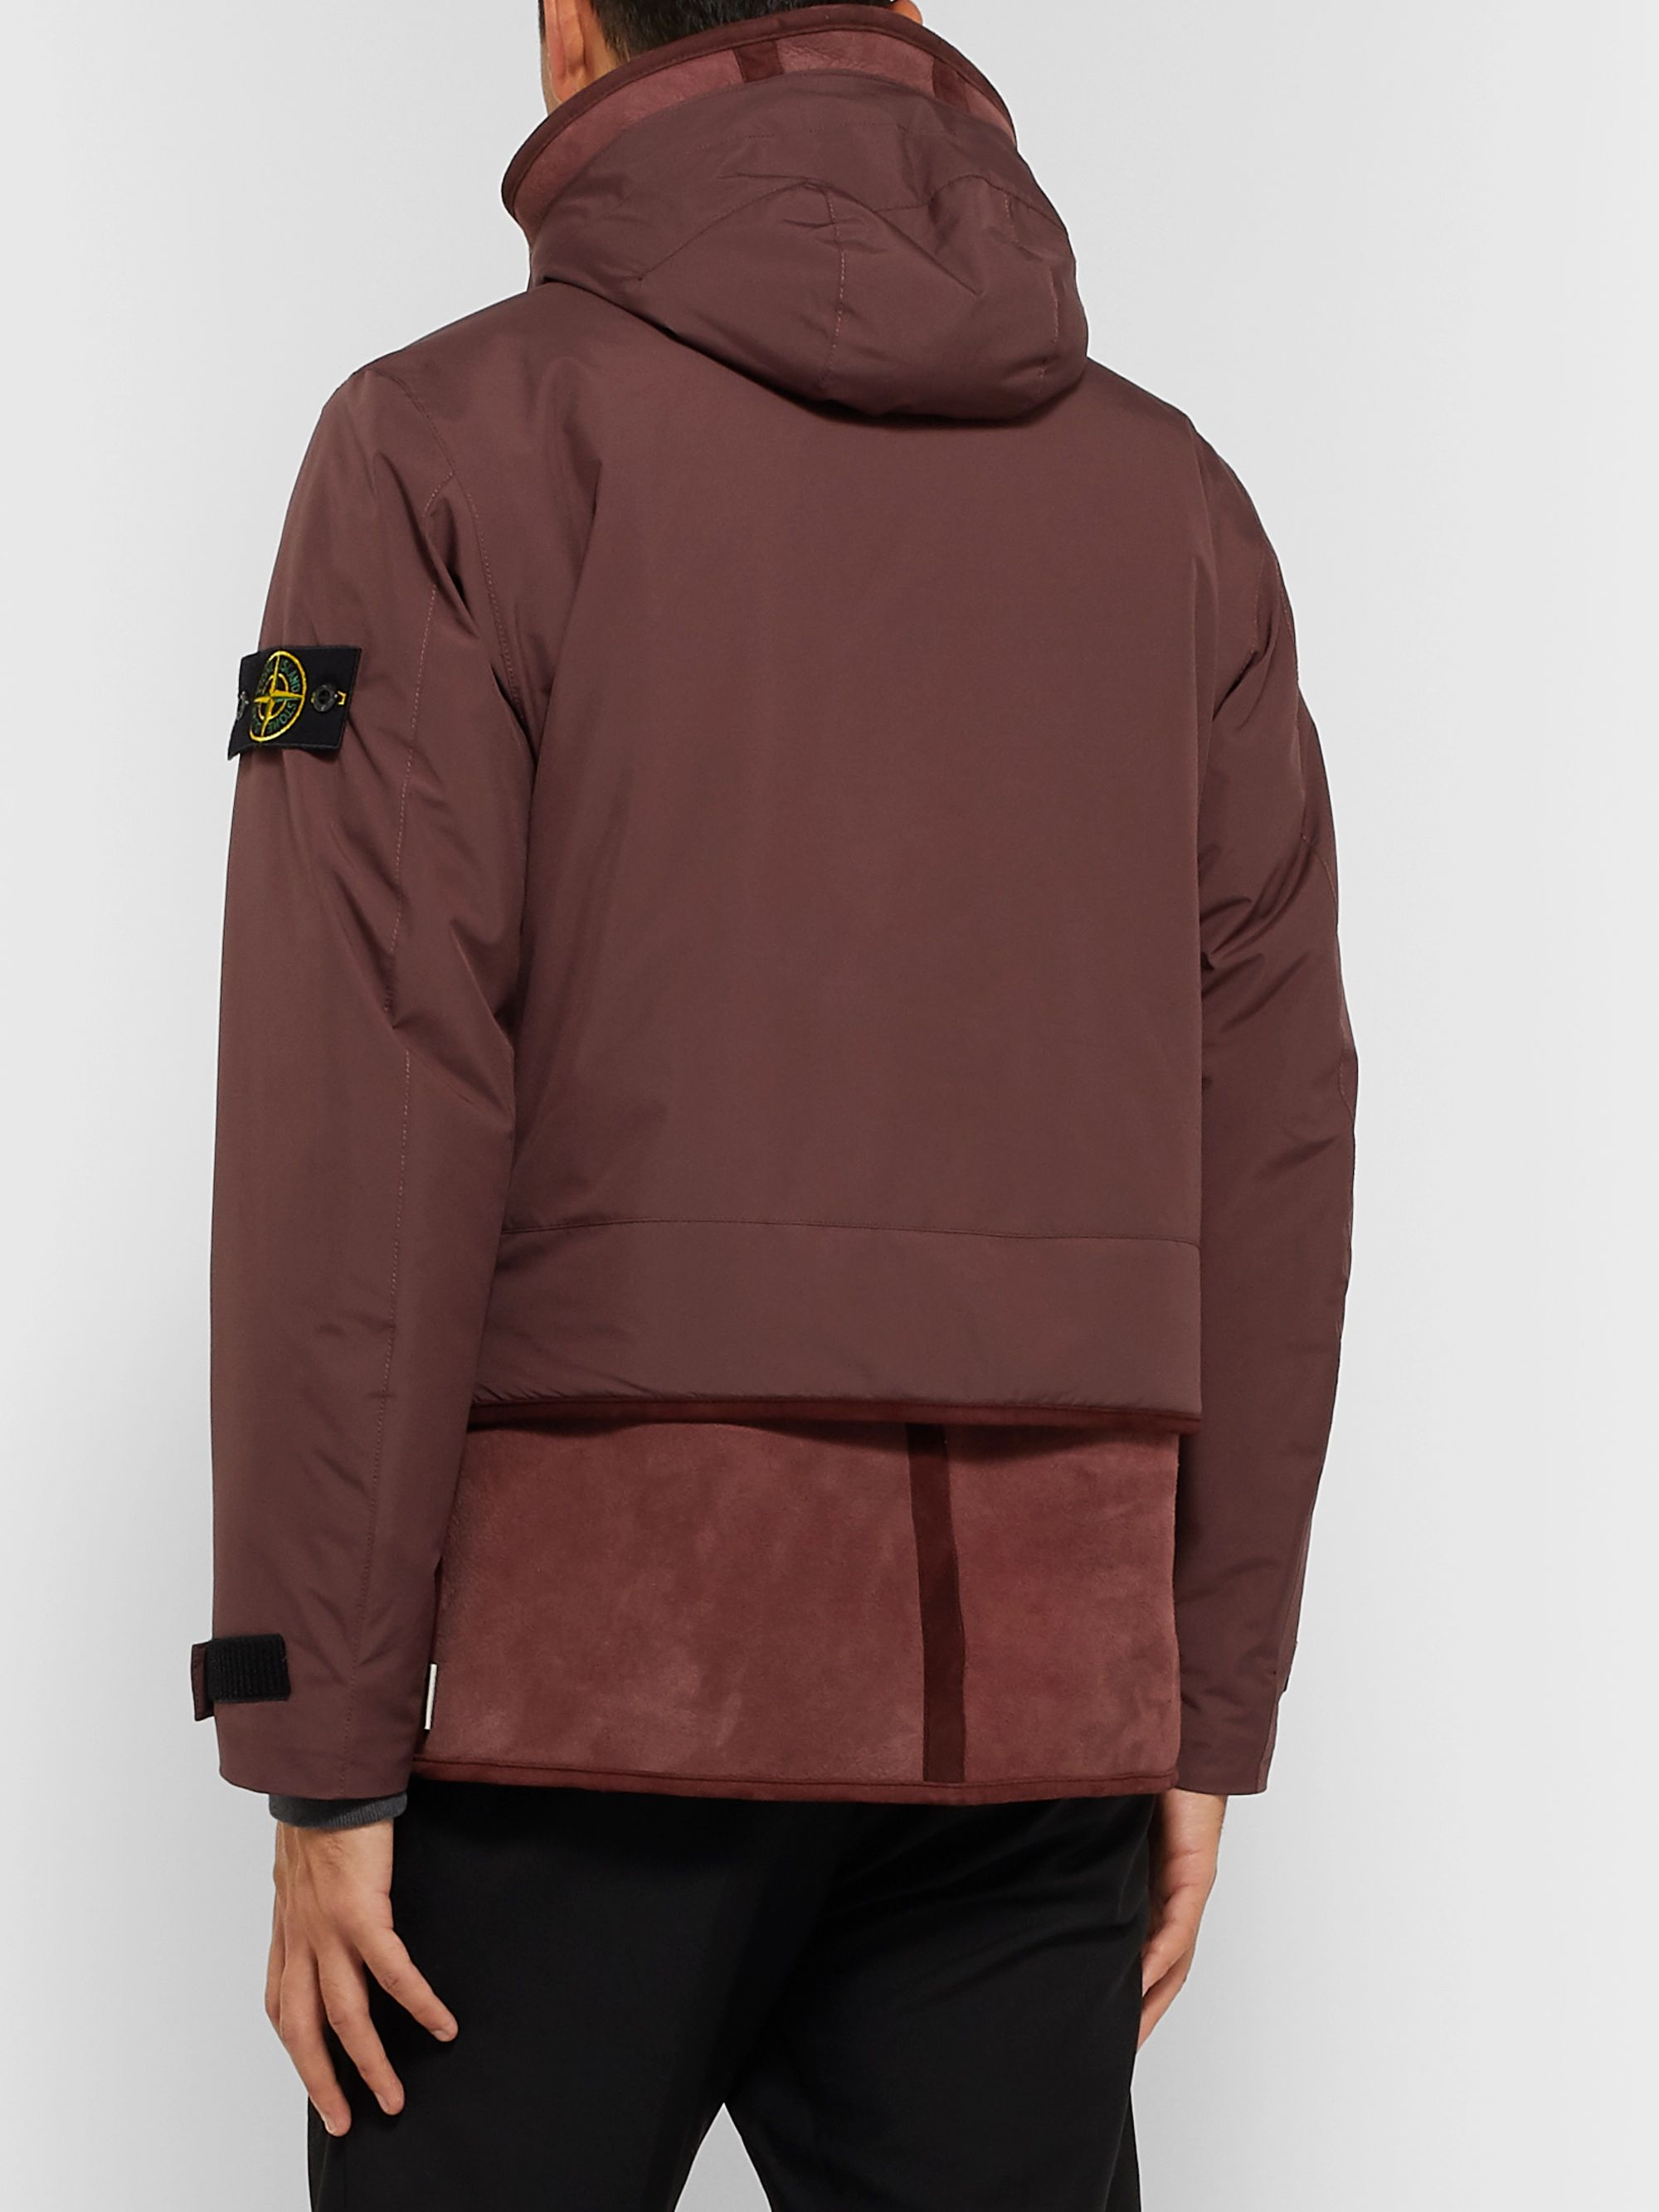 Stone Island Shearling-Panelled Garment-Dyed GORE-TEX Infinium Hooded Jacket